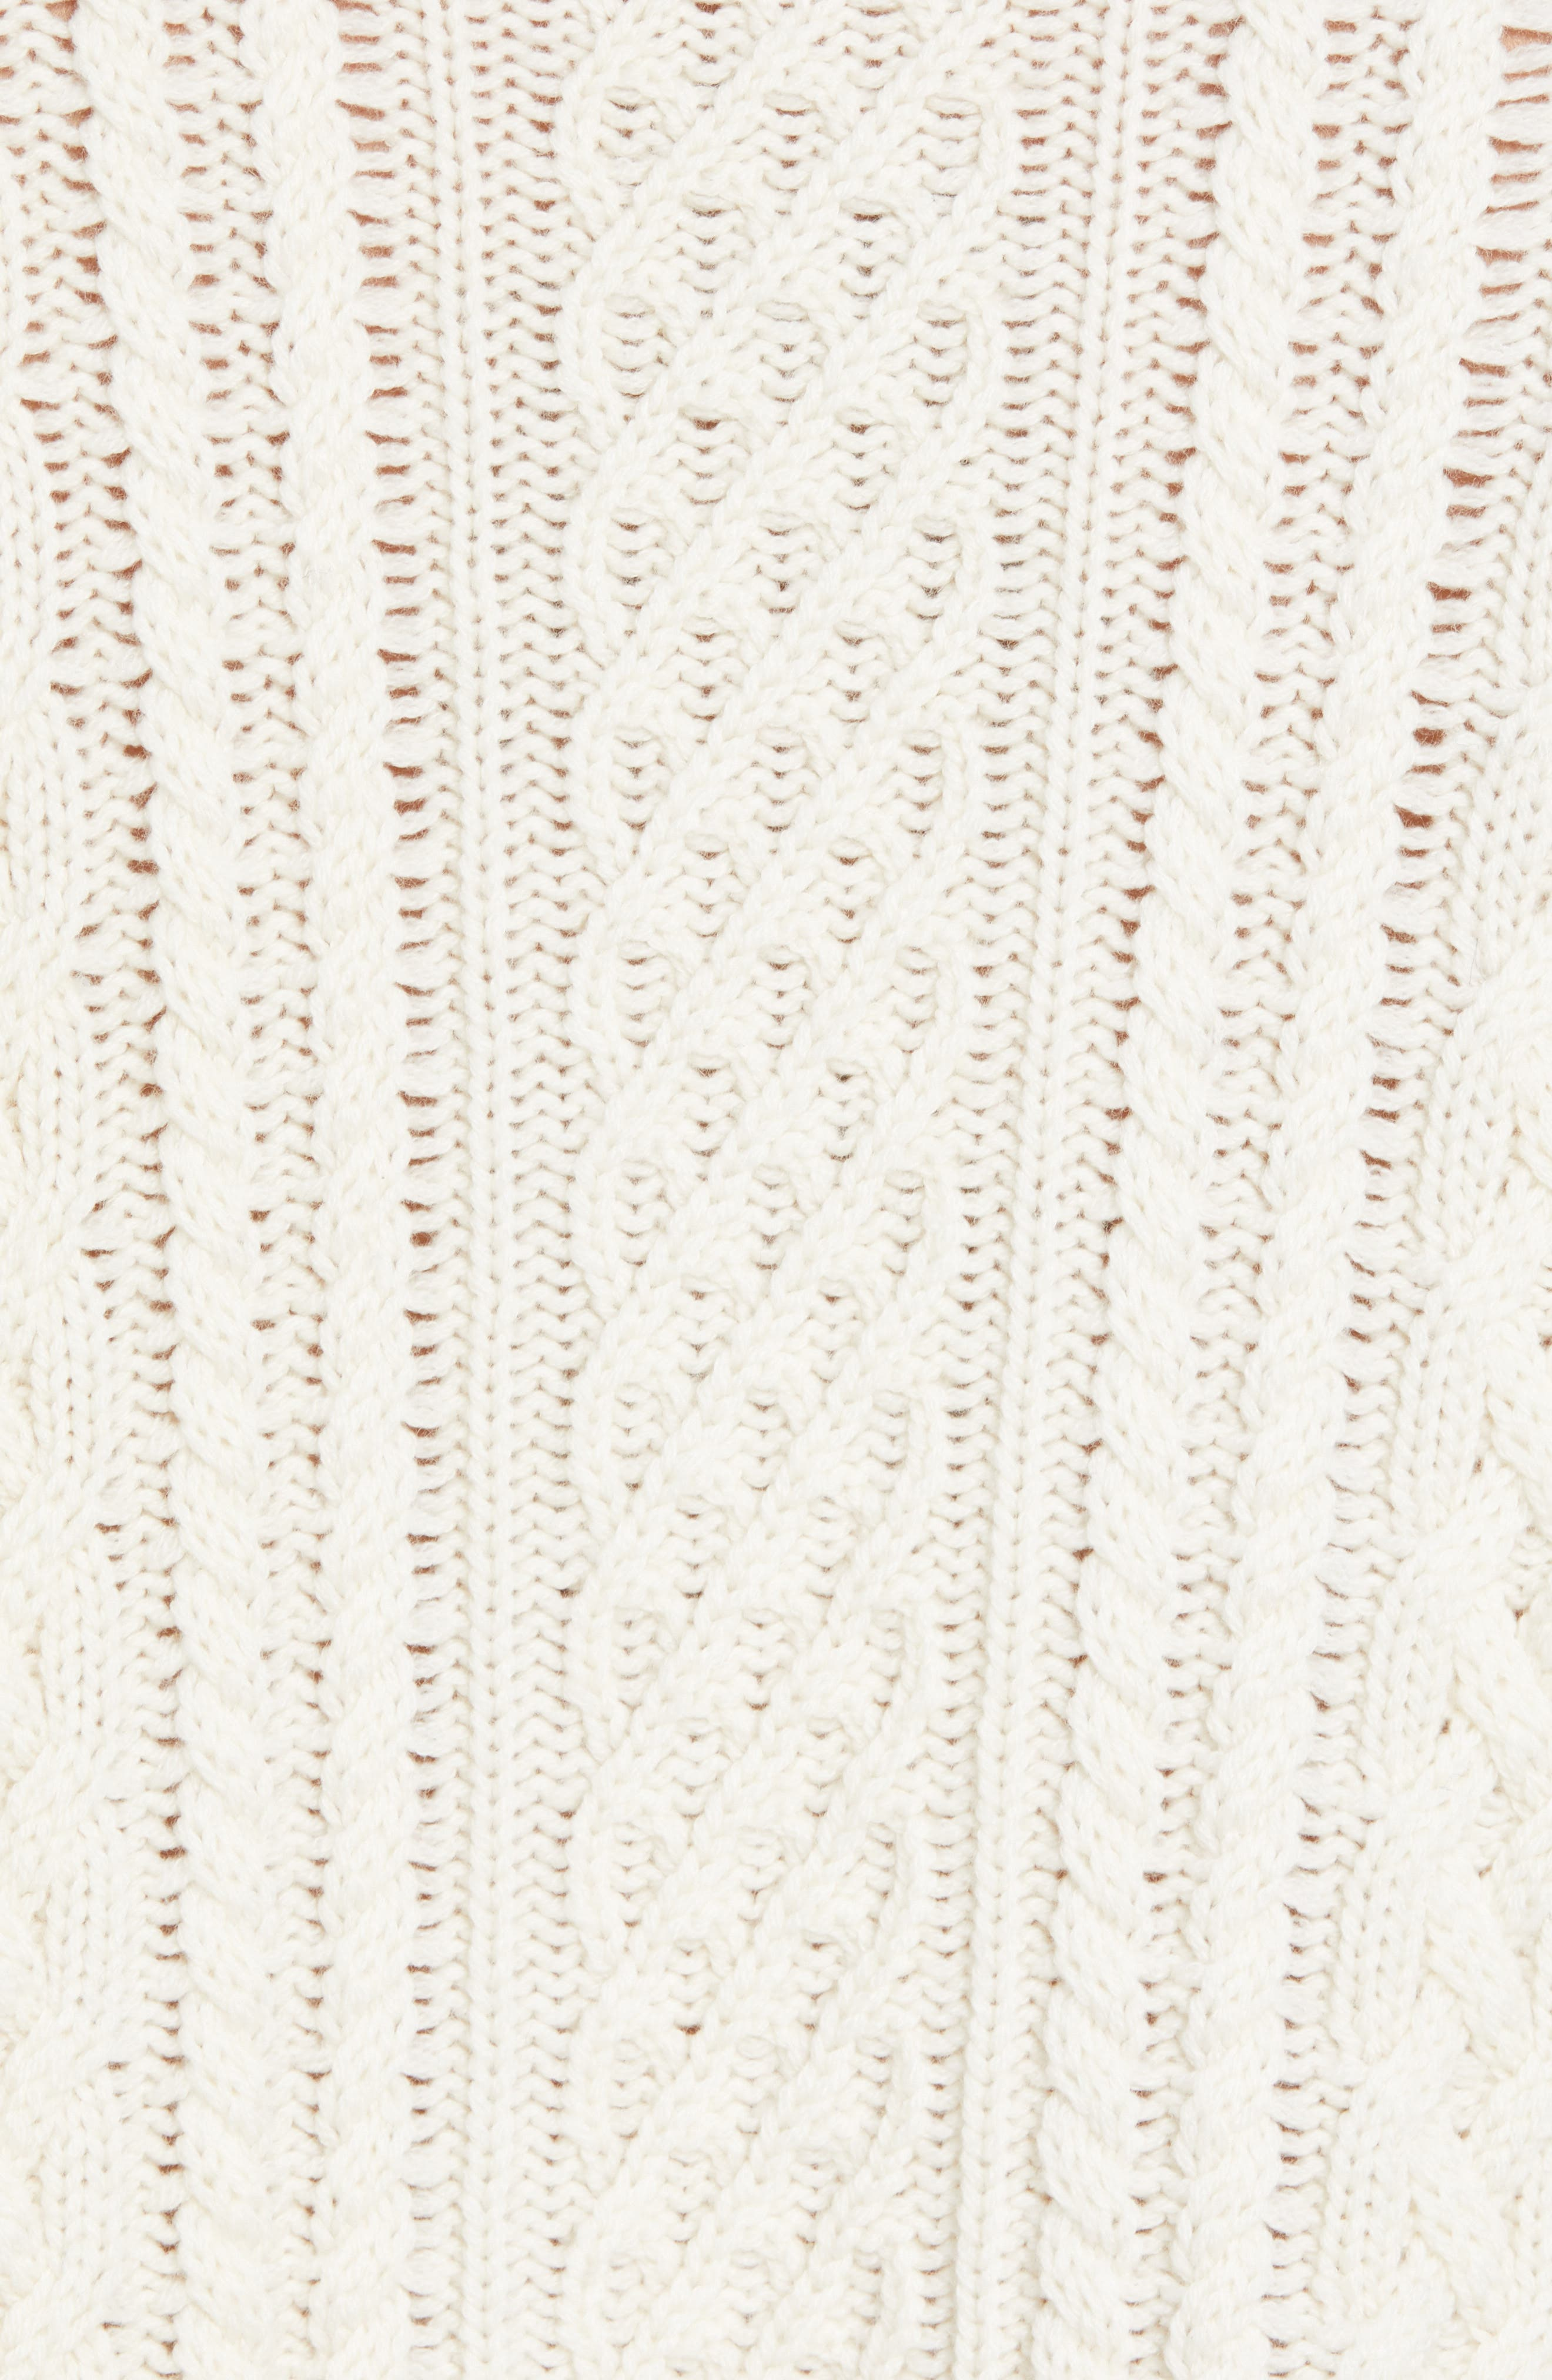 Oversize Distressed Wool Blend Sweater,                             Alternate thumbnail 5, color,                             BEIGE/ WHITE